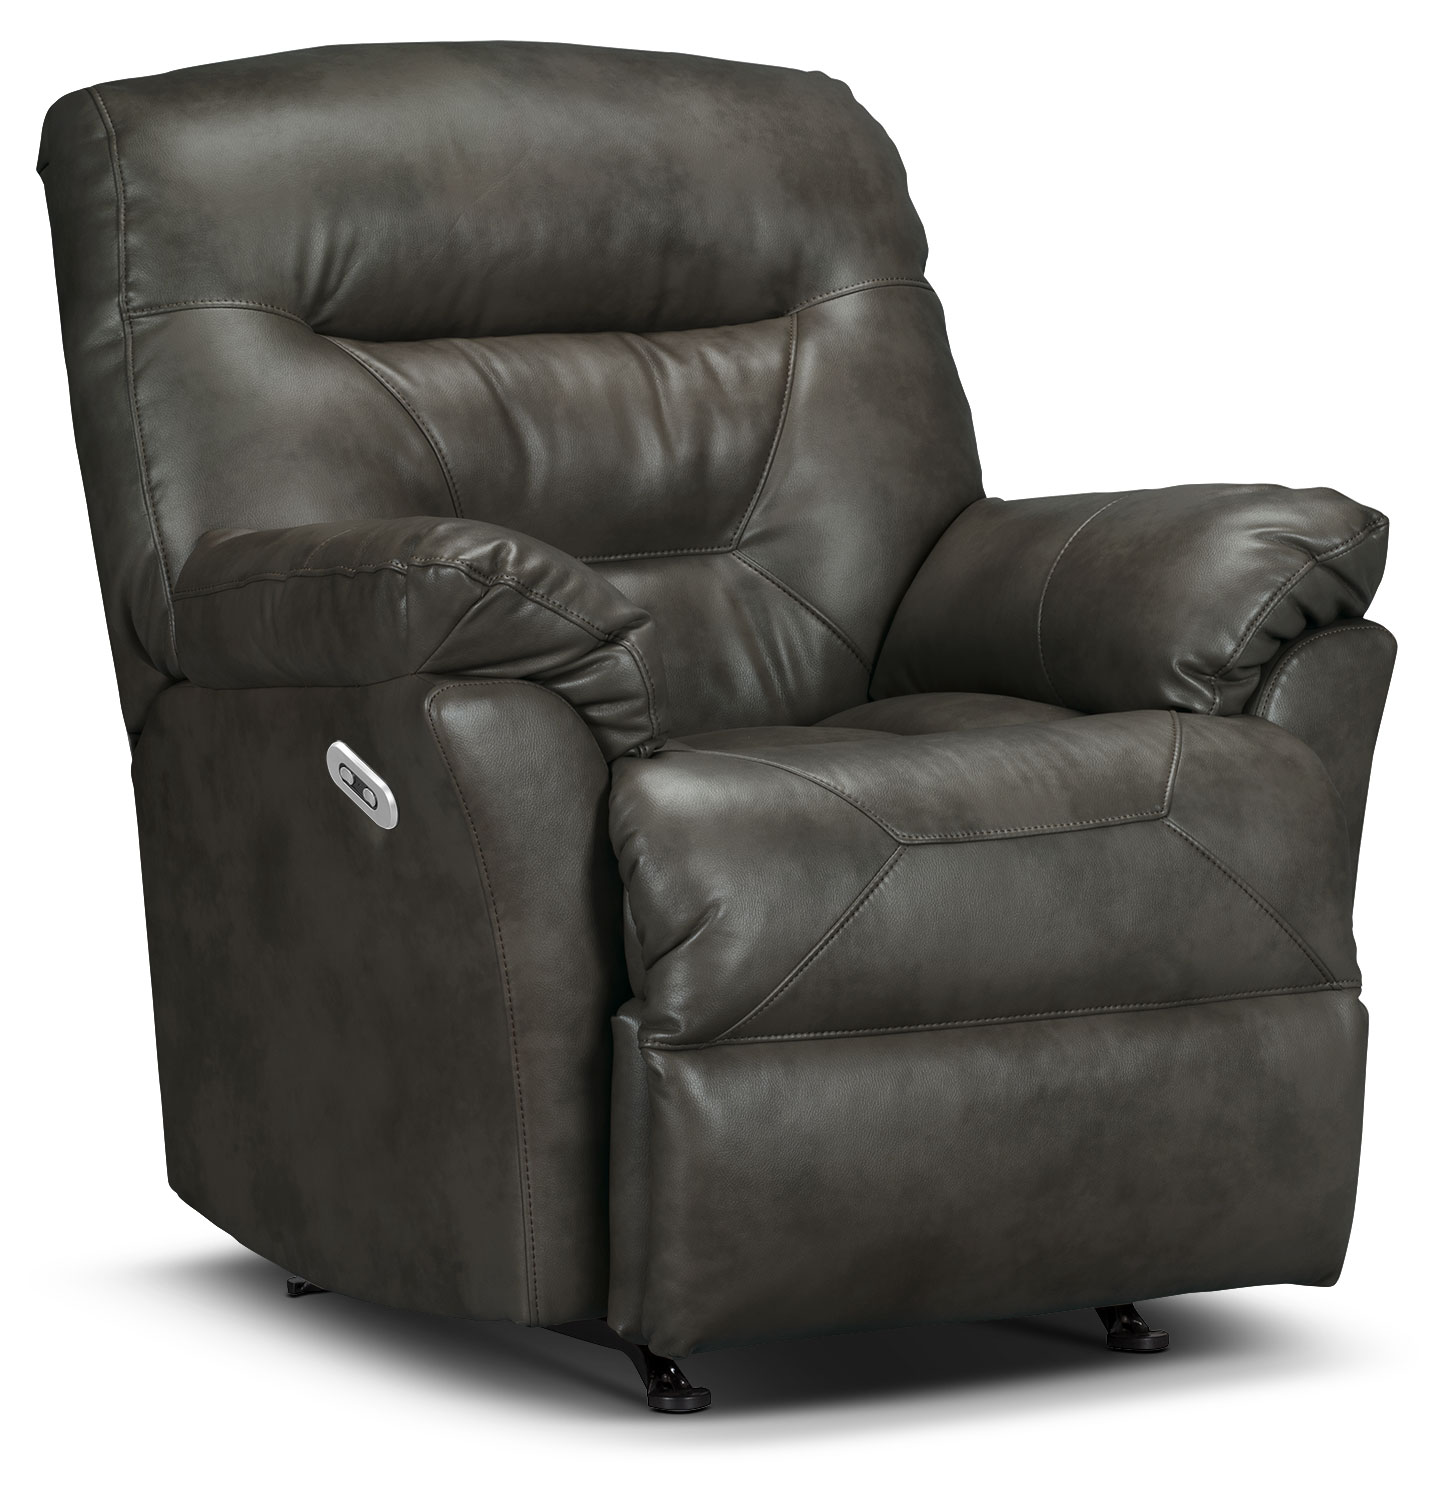 Designed2B Recliner 4579 Leather-Look Fabric Power Recliner - Seal